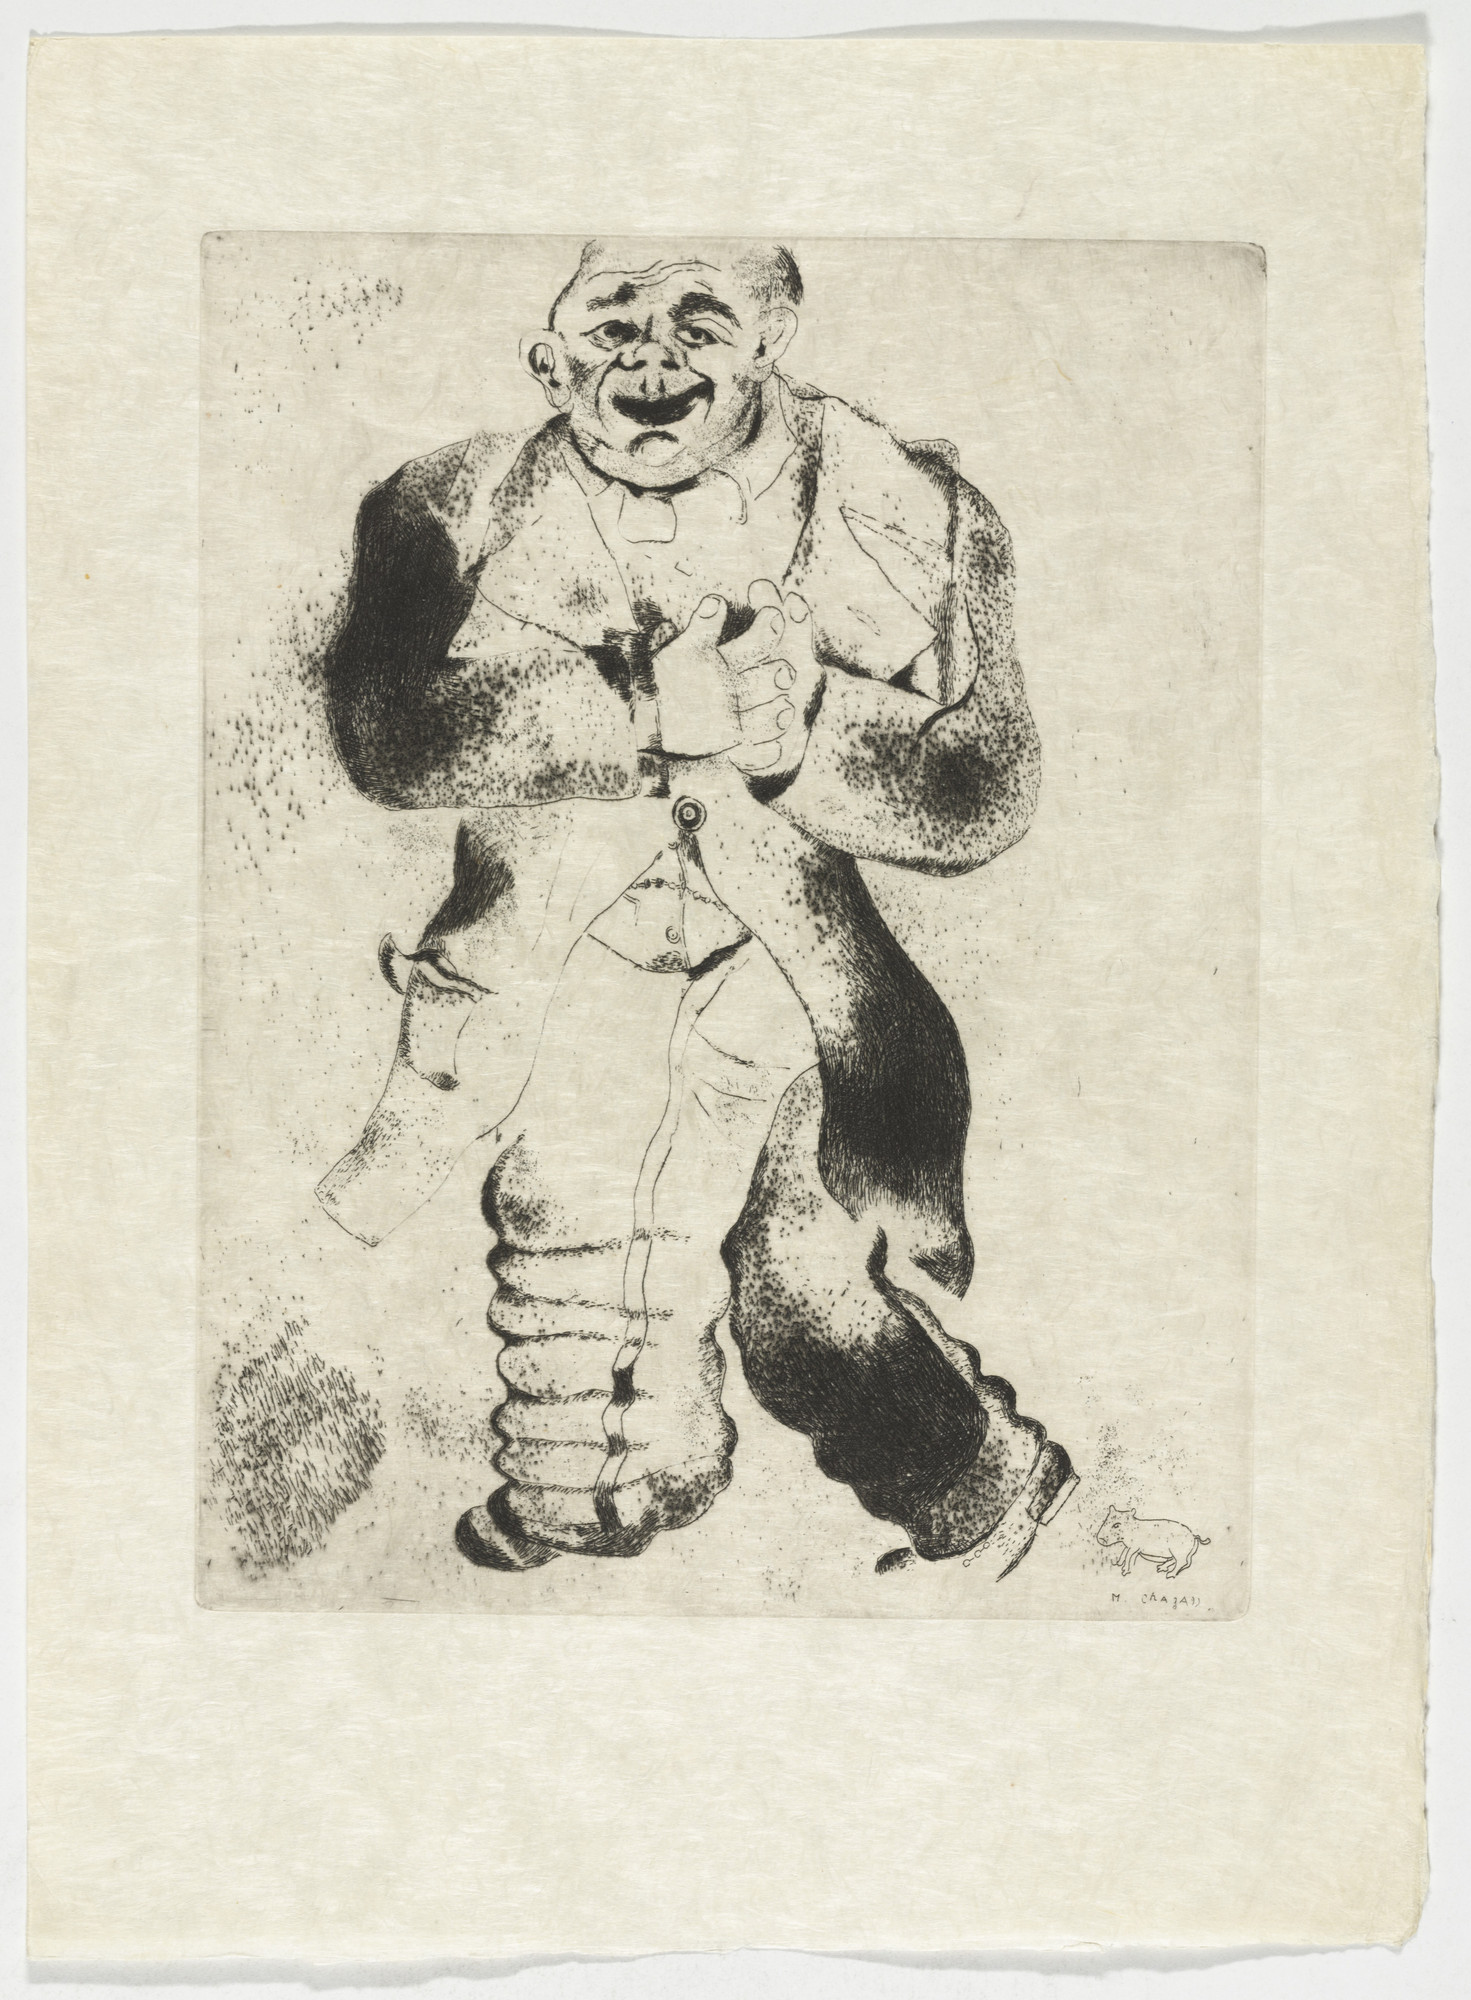 Marc Chagall. Sobakévitch, plate XXXII (supplementary suite) from Les Âmes mortes. 1923-48